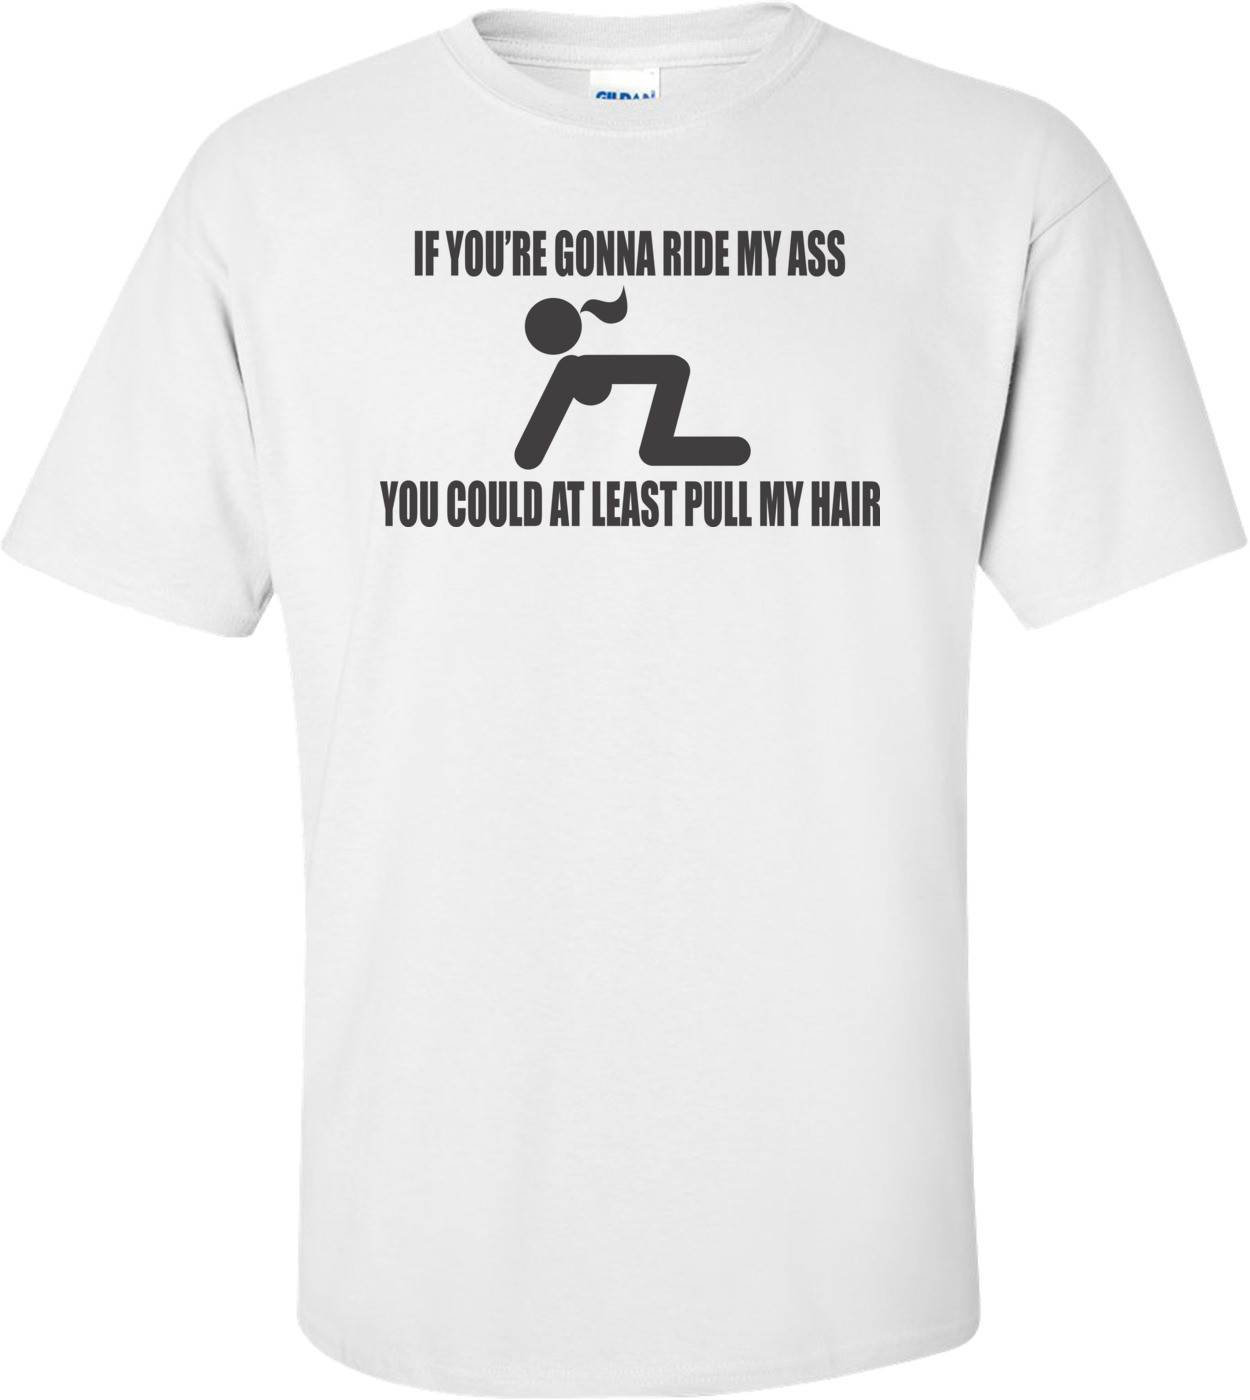 If You're Gonna Ride My Ass You Could At Least Pull My Hair T-shirt